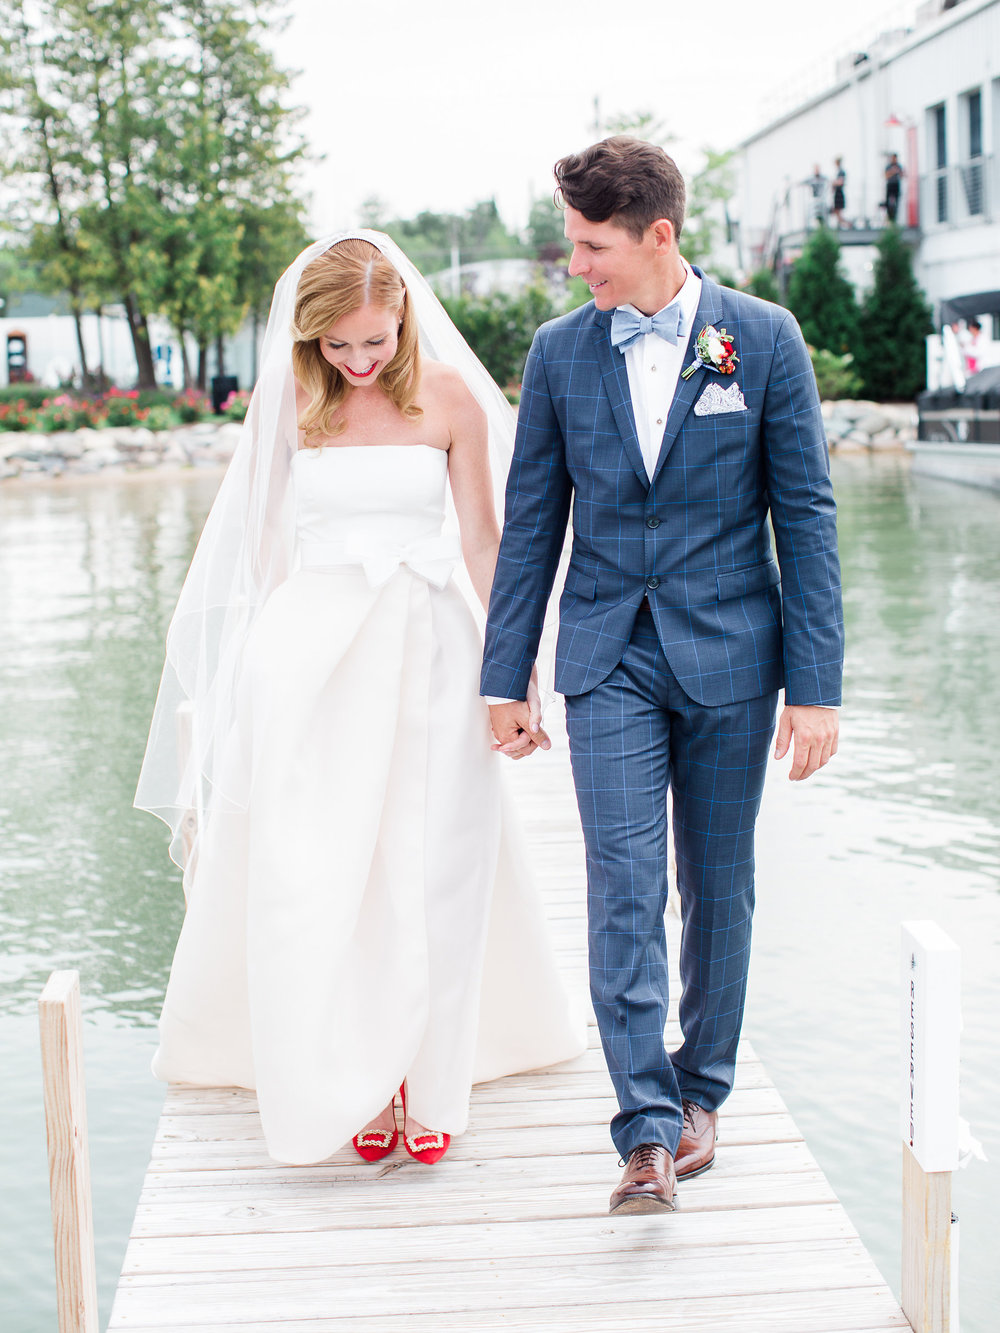 All wedding photos by  Ashley Slater Photography